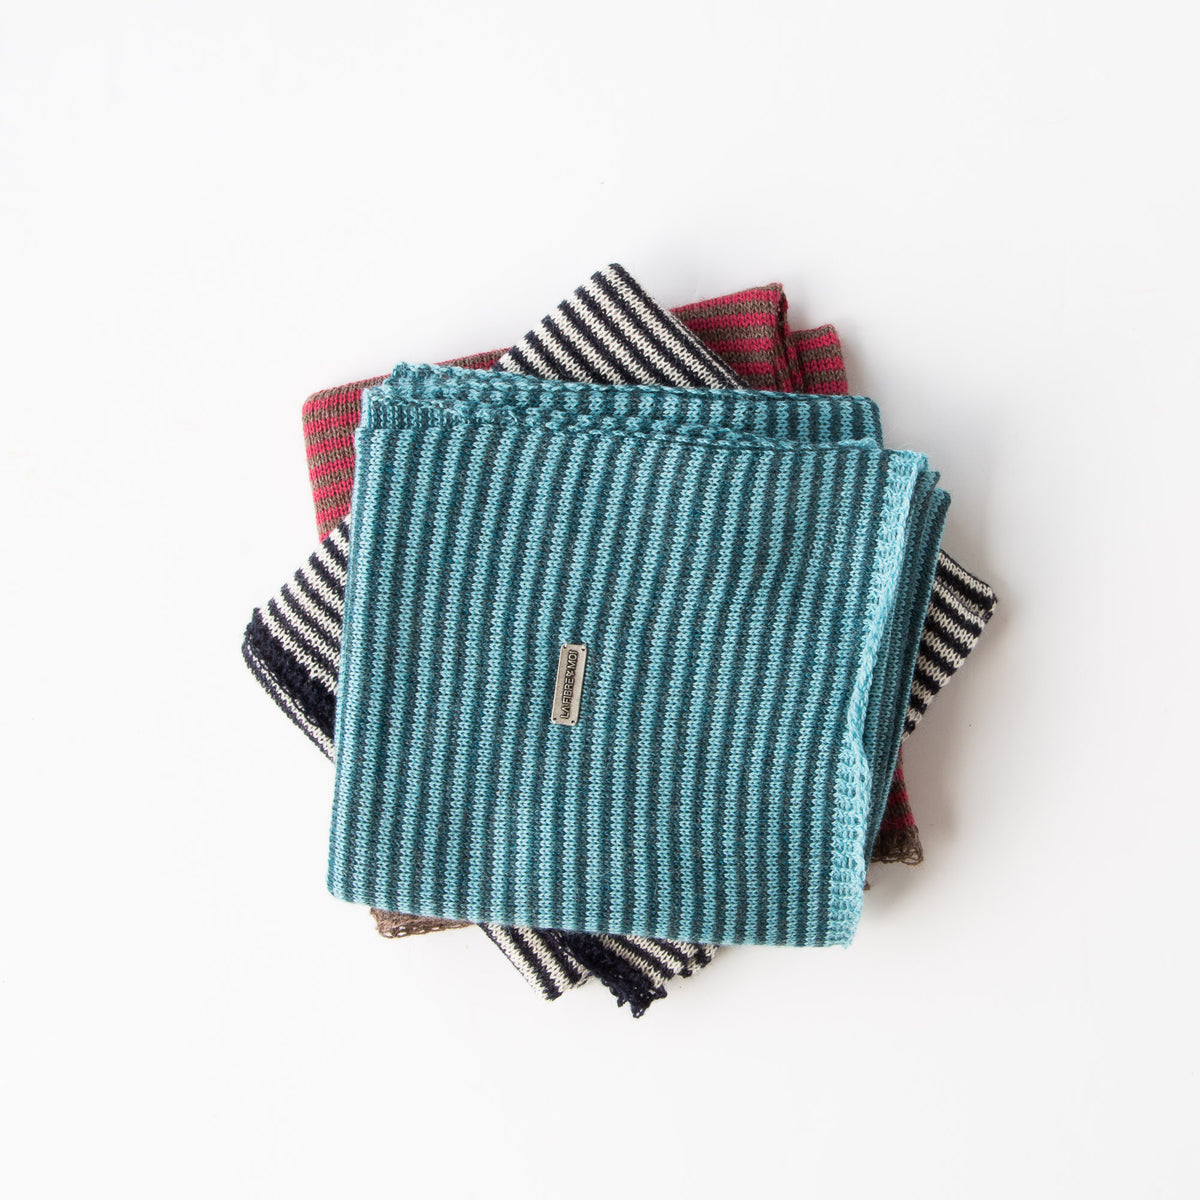 Top View -Baby Alpaca - Unisex Scarves With Fine Stripes & Contrasting Hems - Sold by Chic & Basta